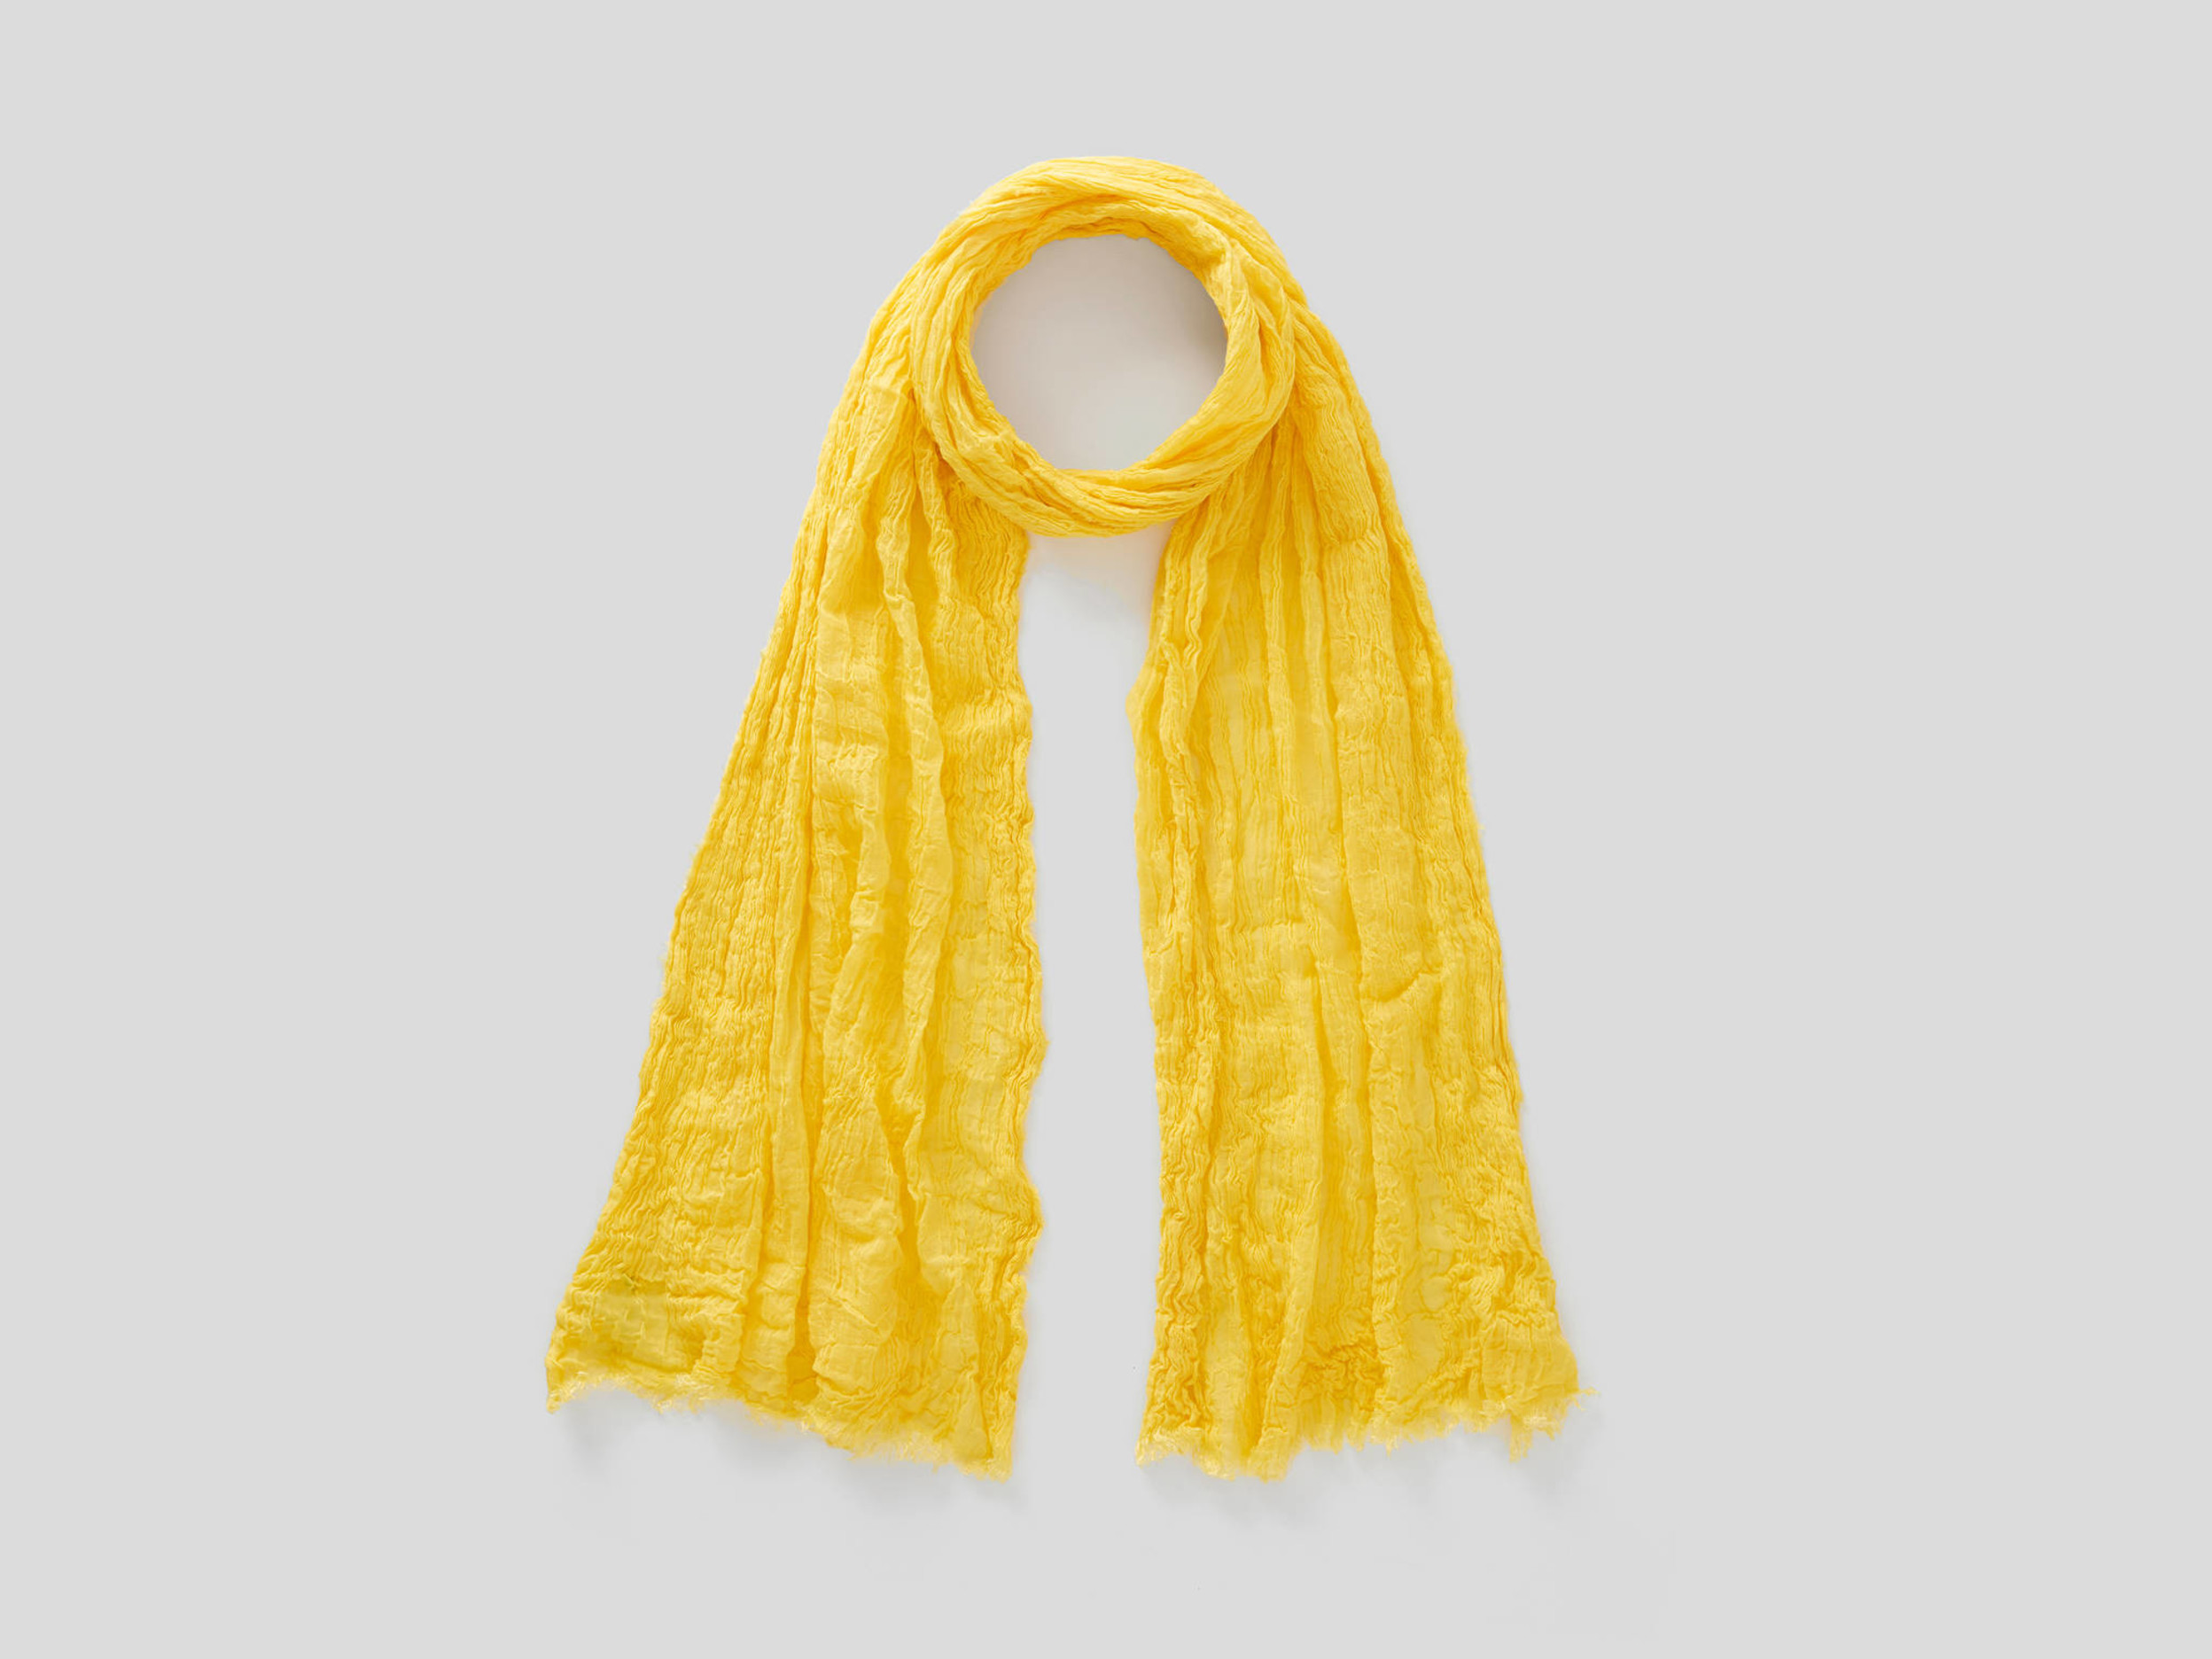 benetton online exclusive, crumpled look scarf, size os, yellow, women